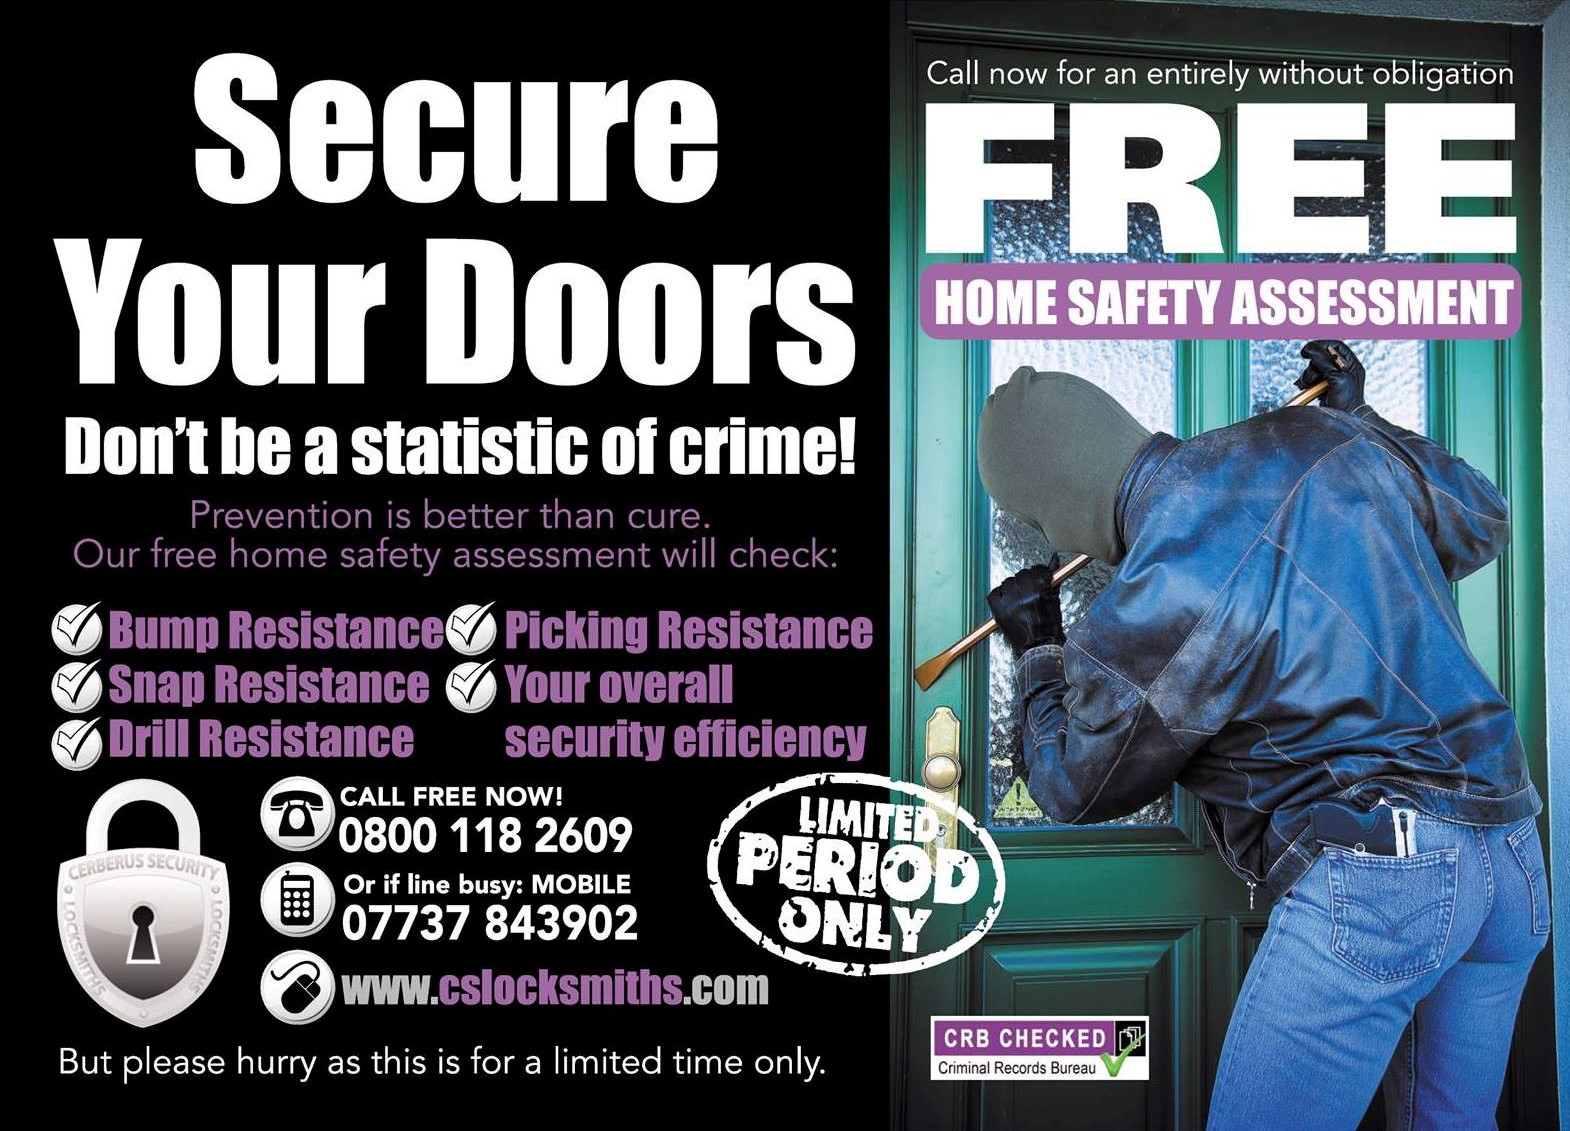 Burglary prevention image